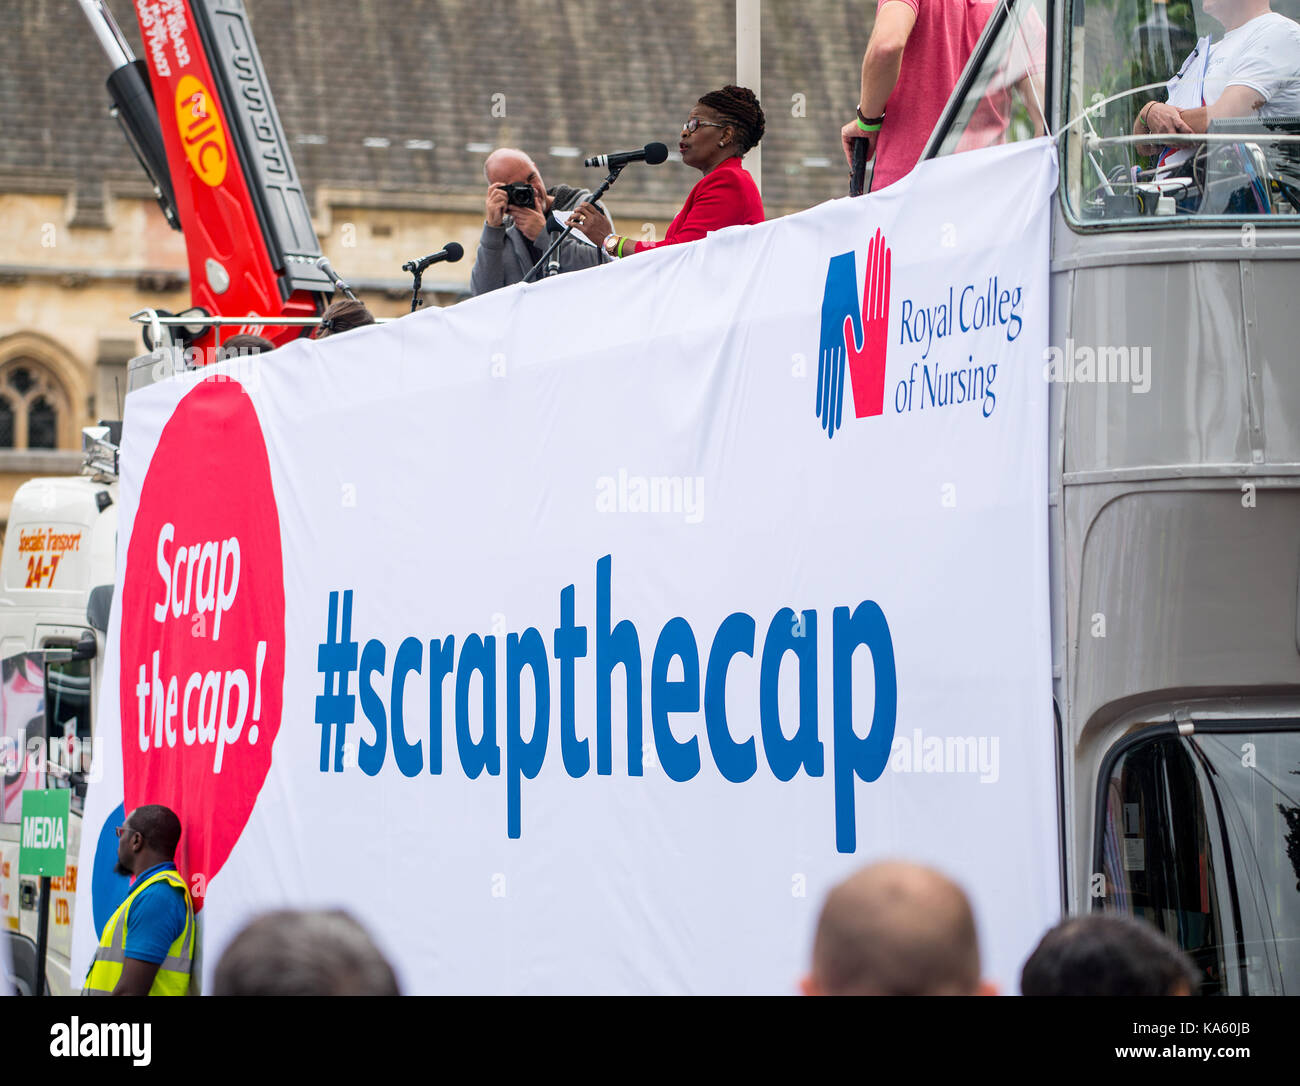 Scrap The Cap Protest - Thousands of nurses gather at Parliament Square in London, to campaign against the government's - Stock Image